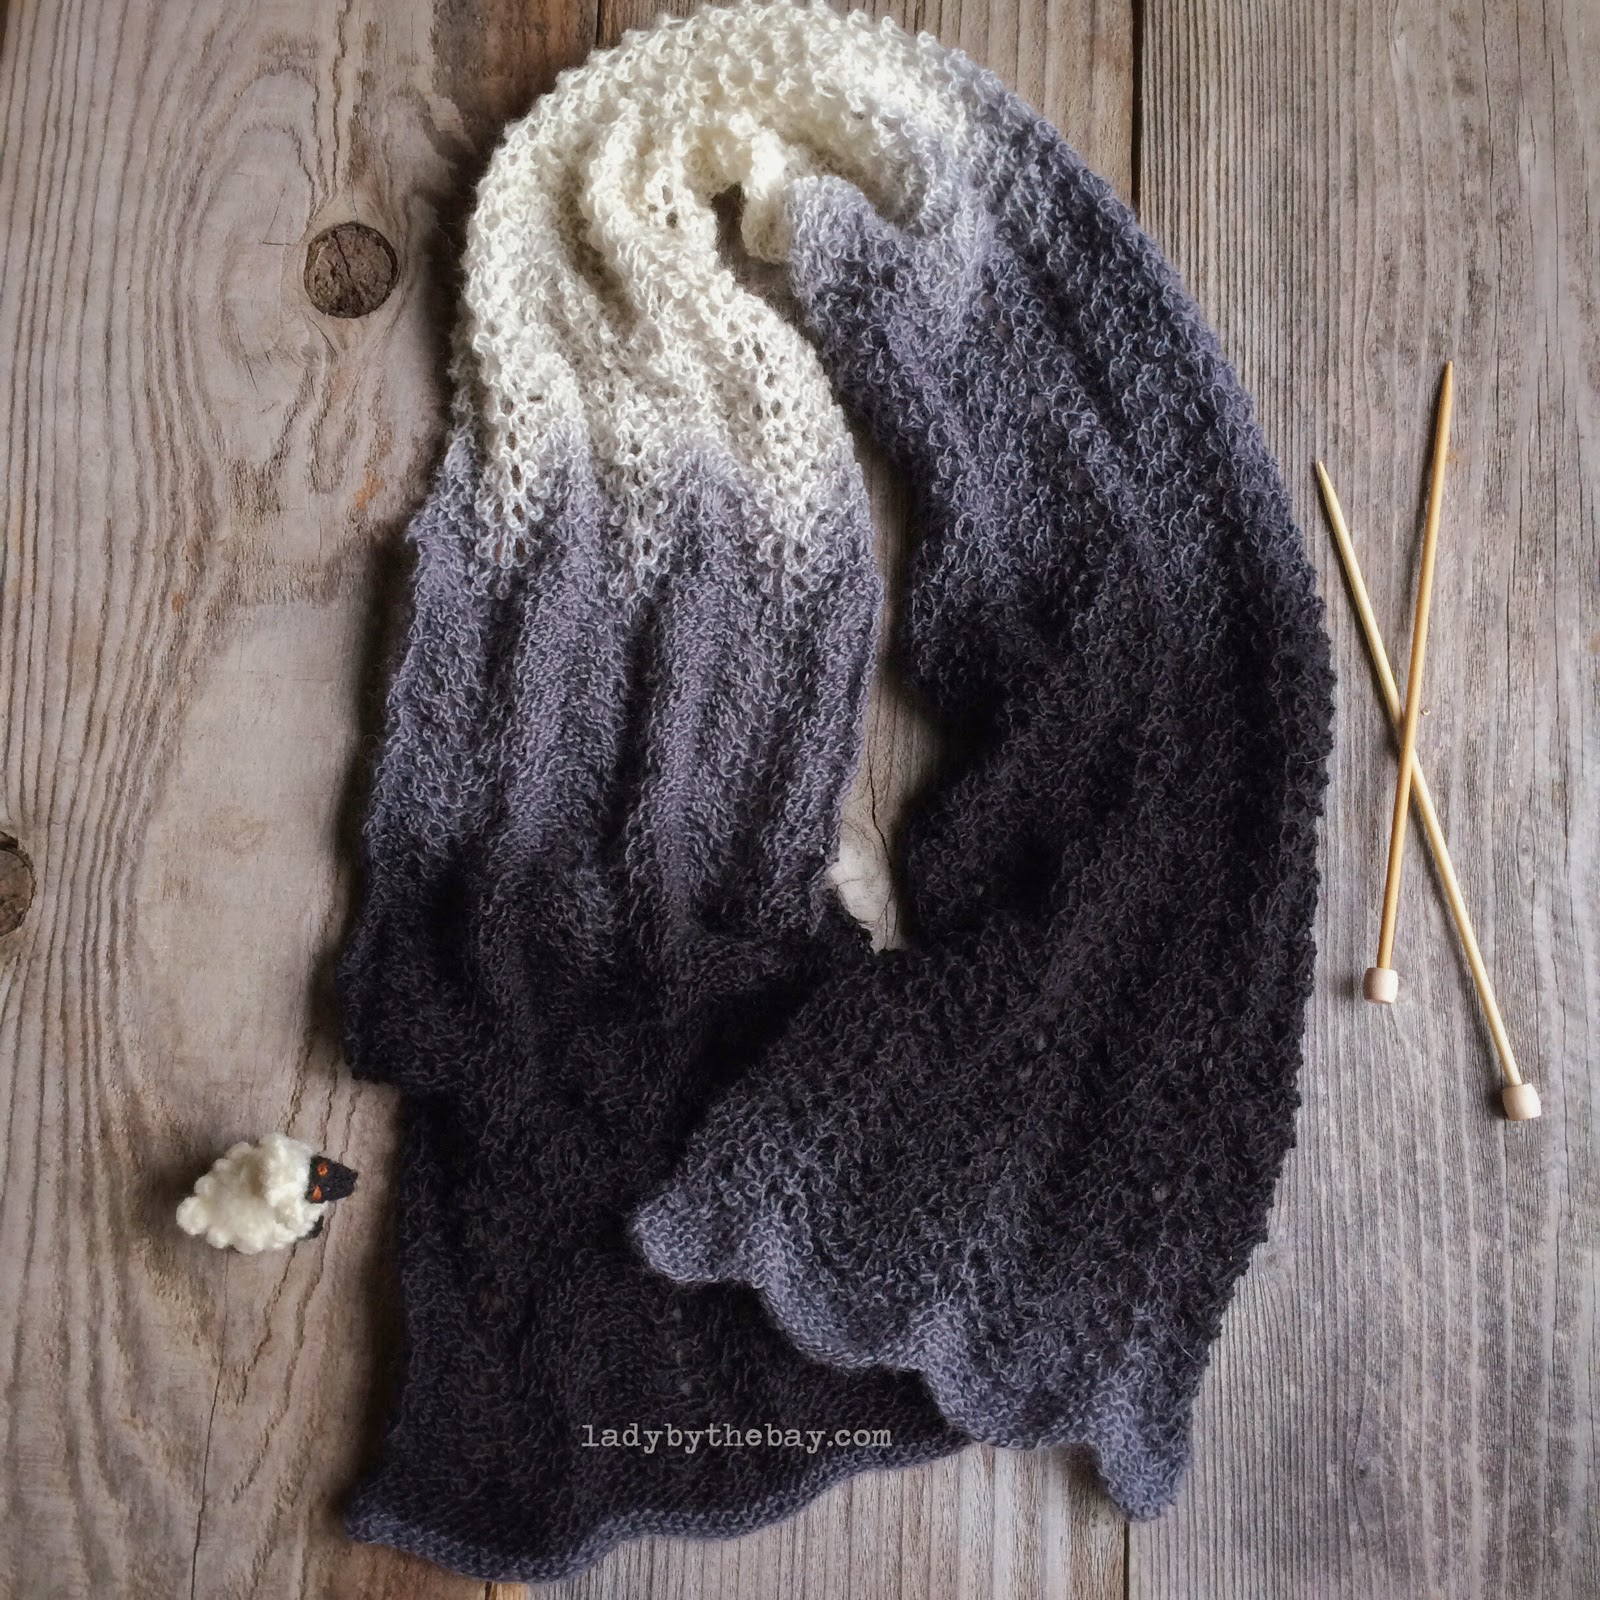 Gorgeous Knitting Pattern: Feather and Fan Scarf - Stitch and Unwind